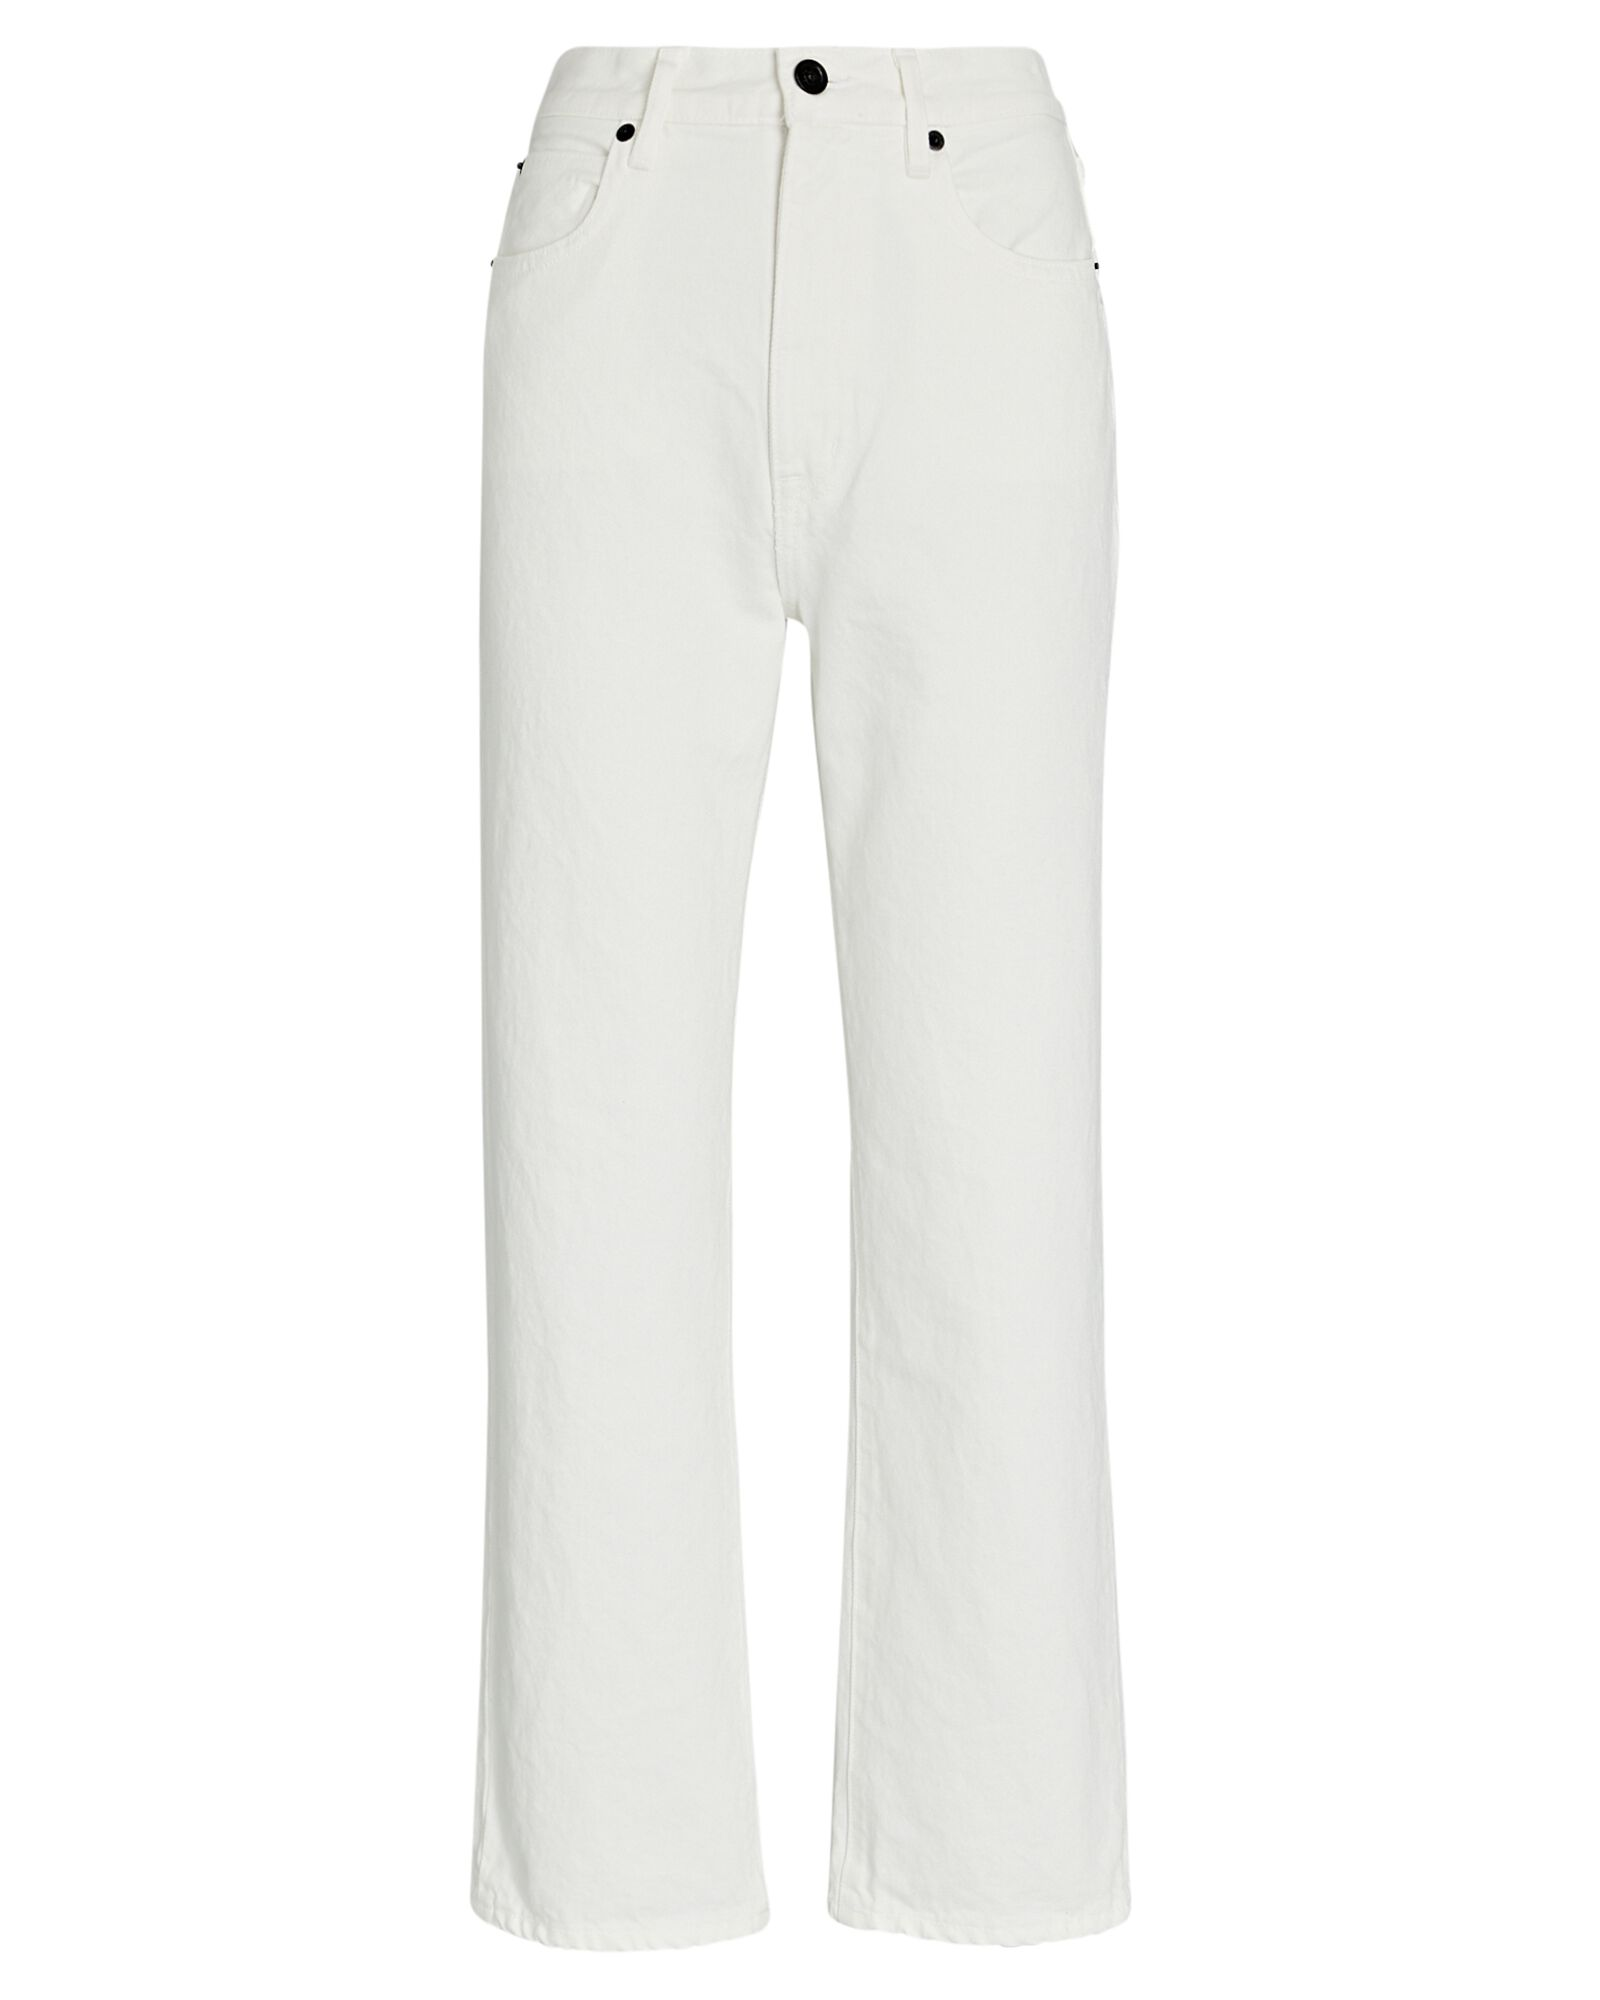 London Cropped High-Rise Jeans, WHITE, hi-res